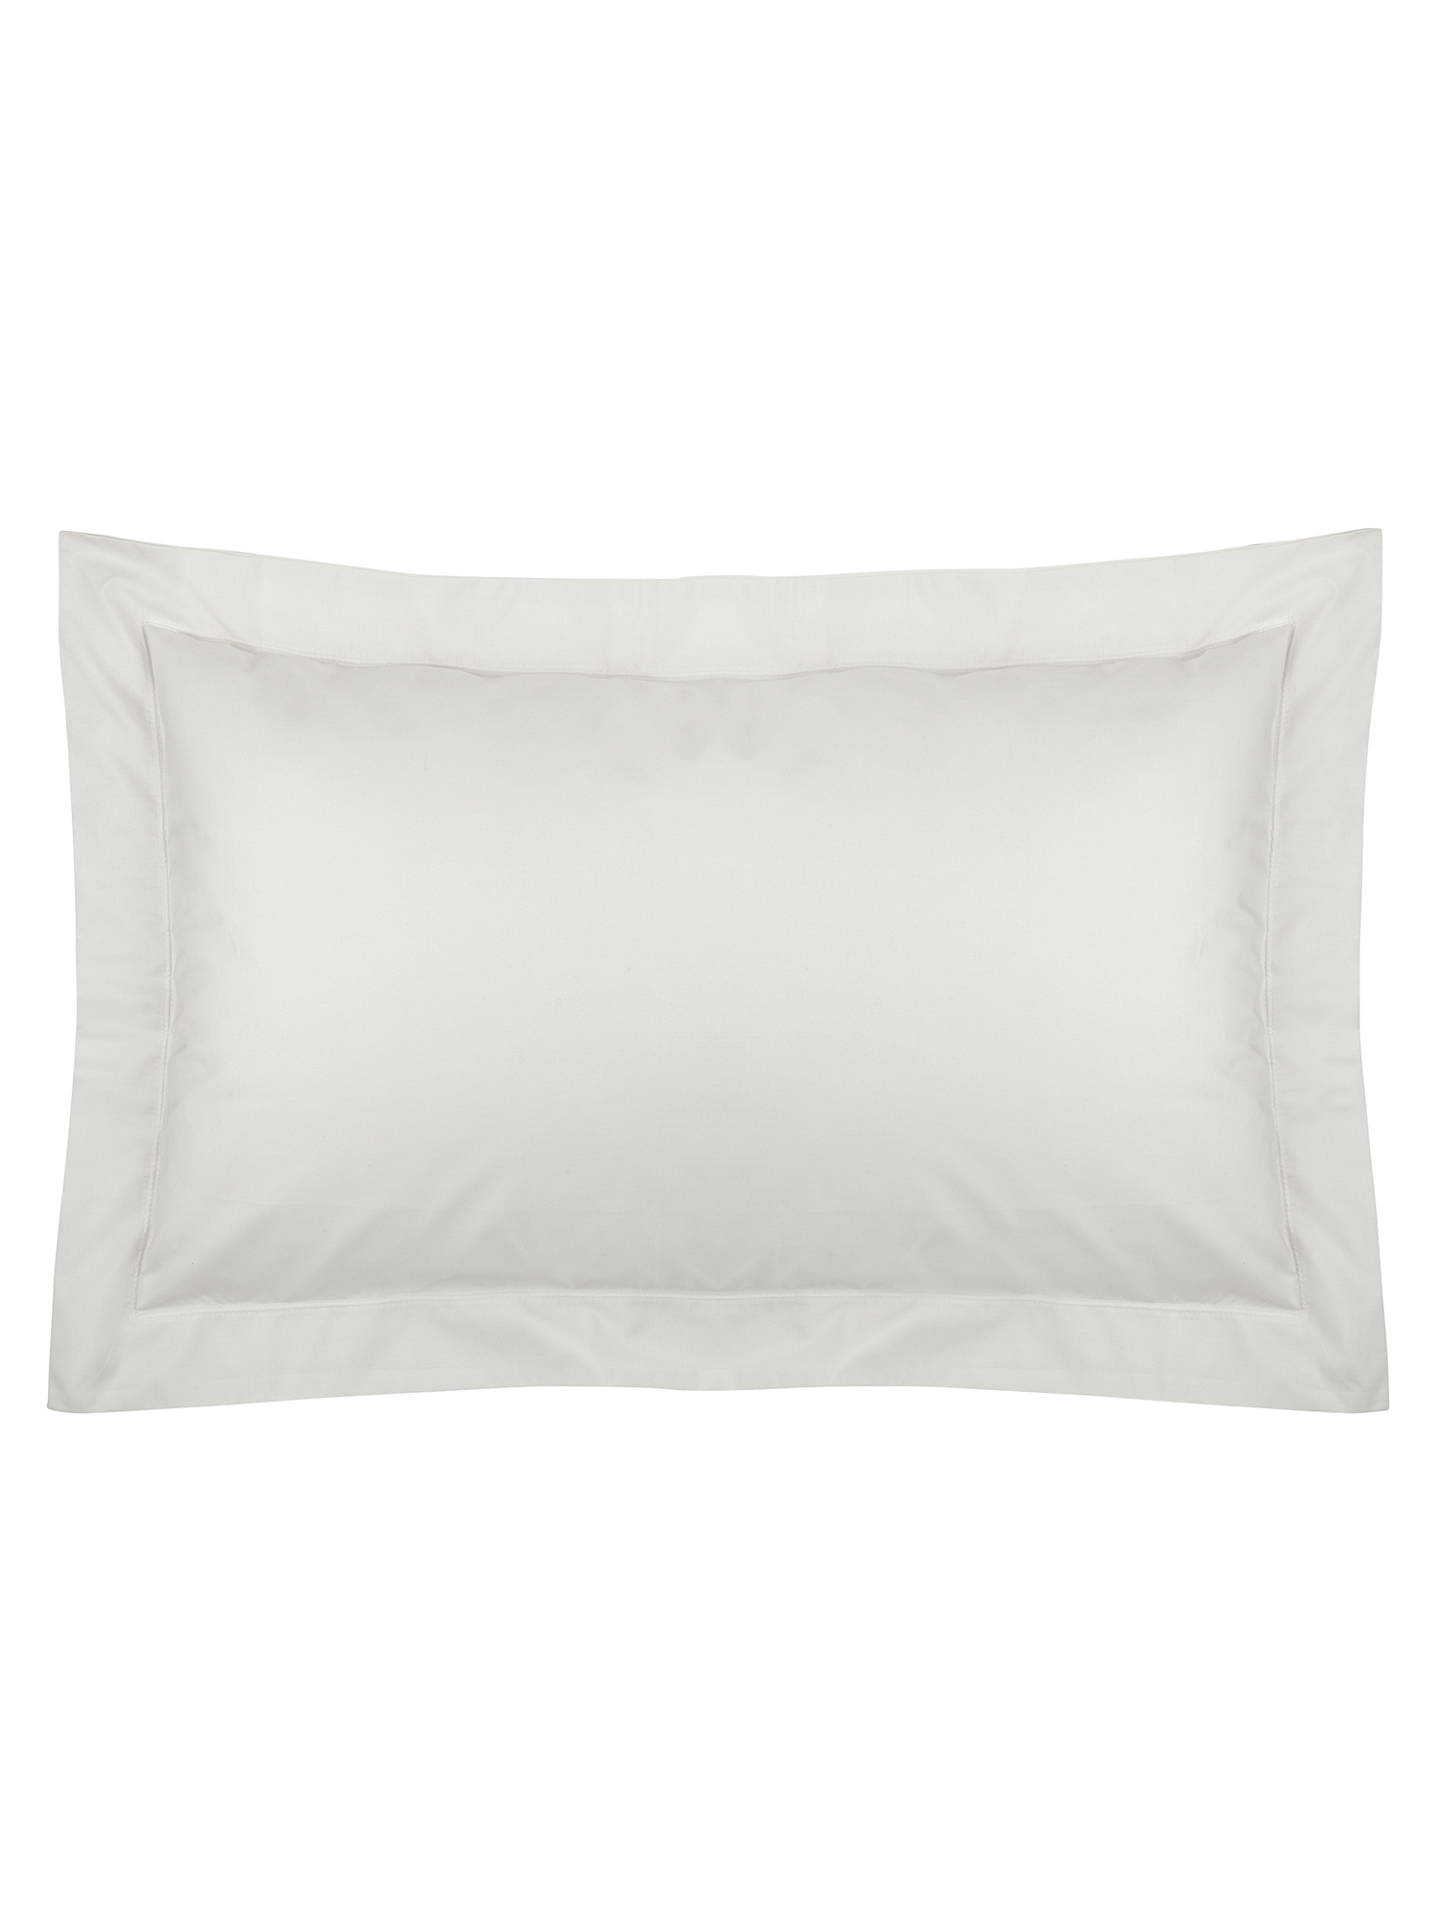 Buy John Lewis & Partners Crisp and Fresh 200 Thread Count Egyptian Cotton Oxford Pillowcase, Oyster Online at johnlewis.com